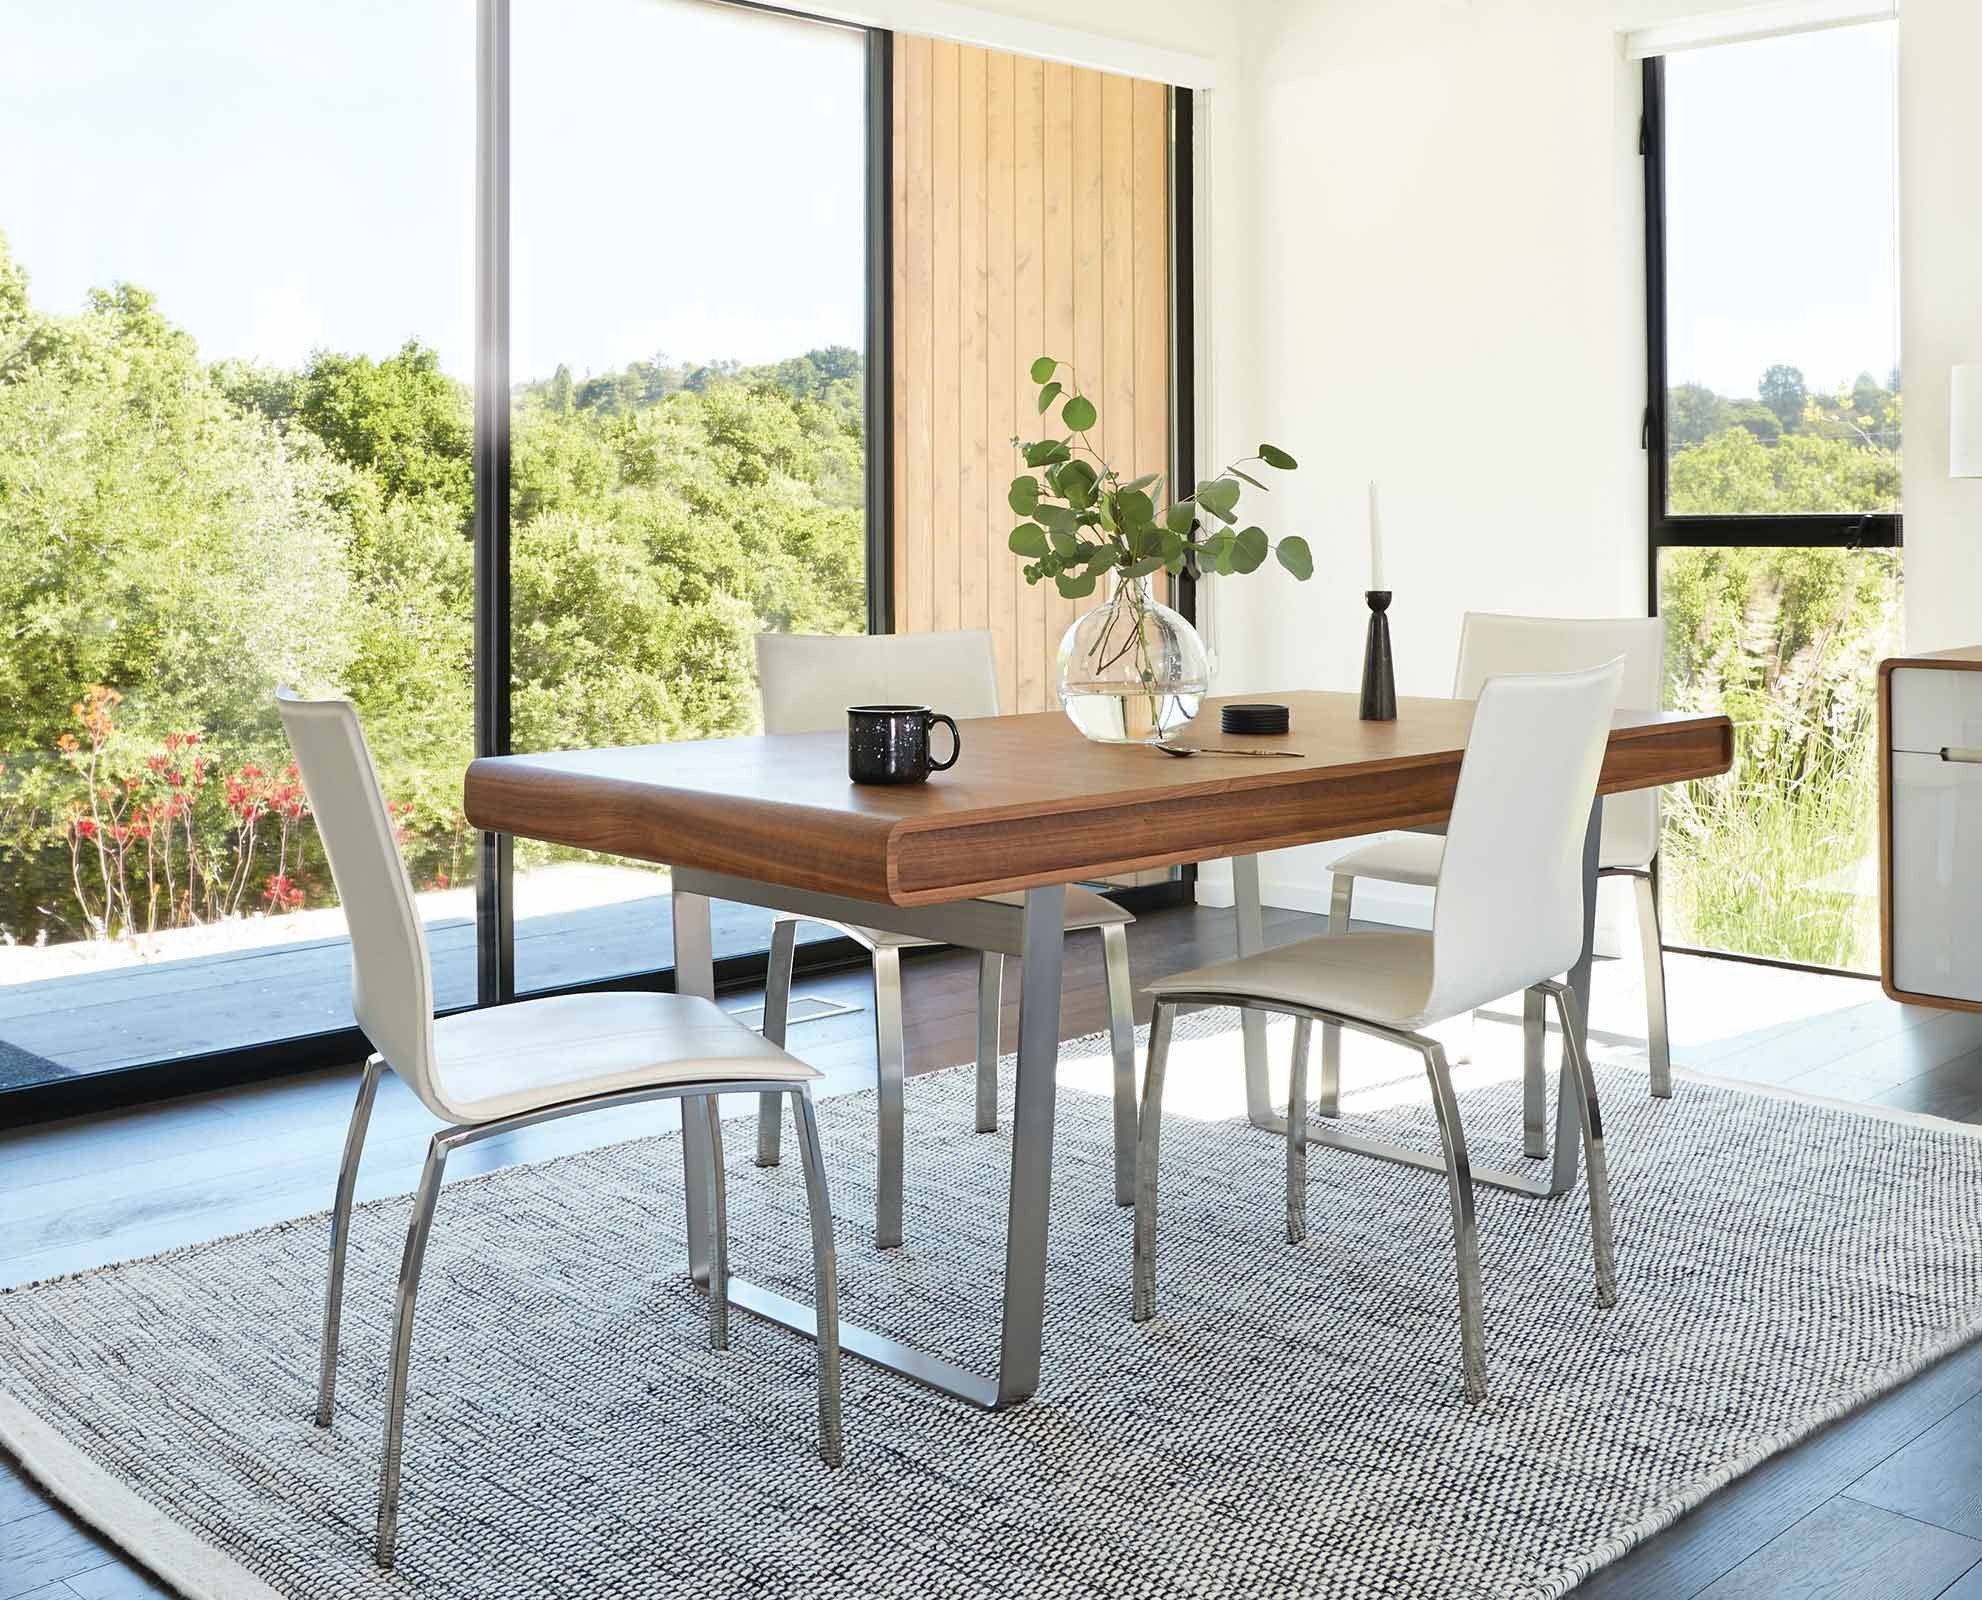 Jelena Dining Chair  Dining chairs, Dining table, Dinning room chairs